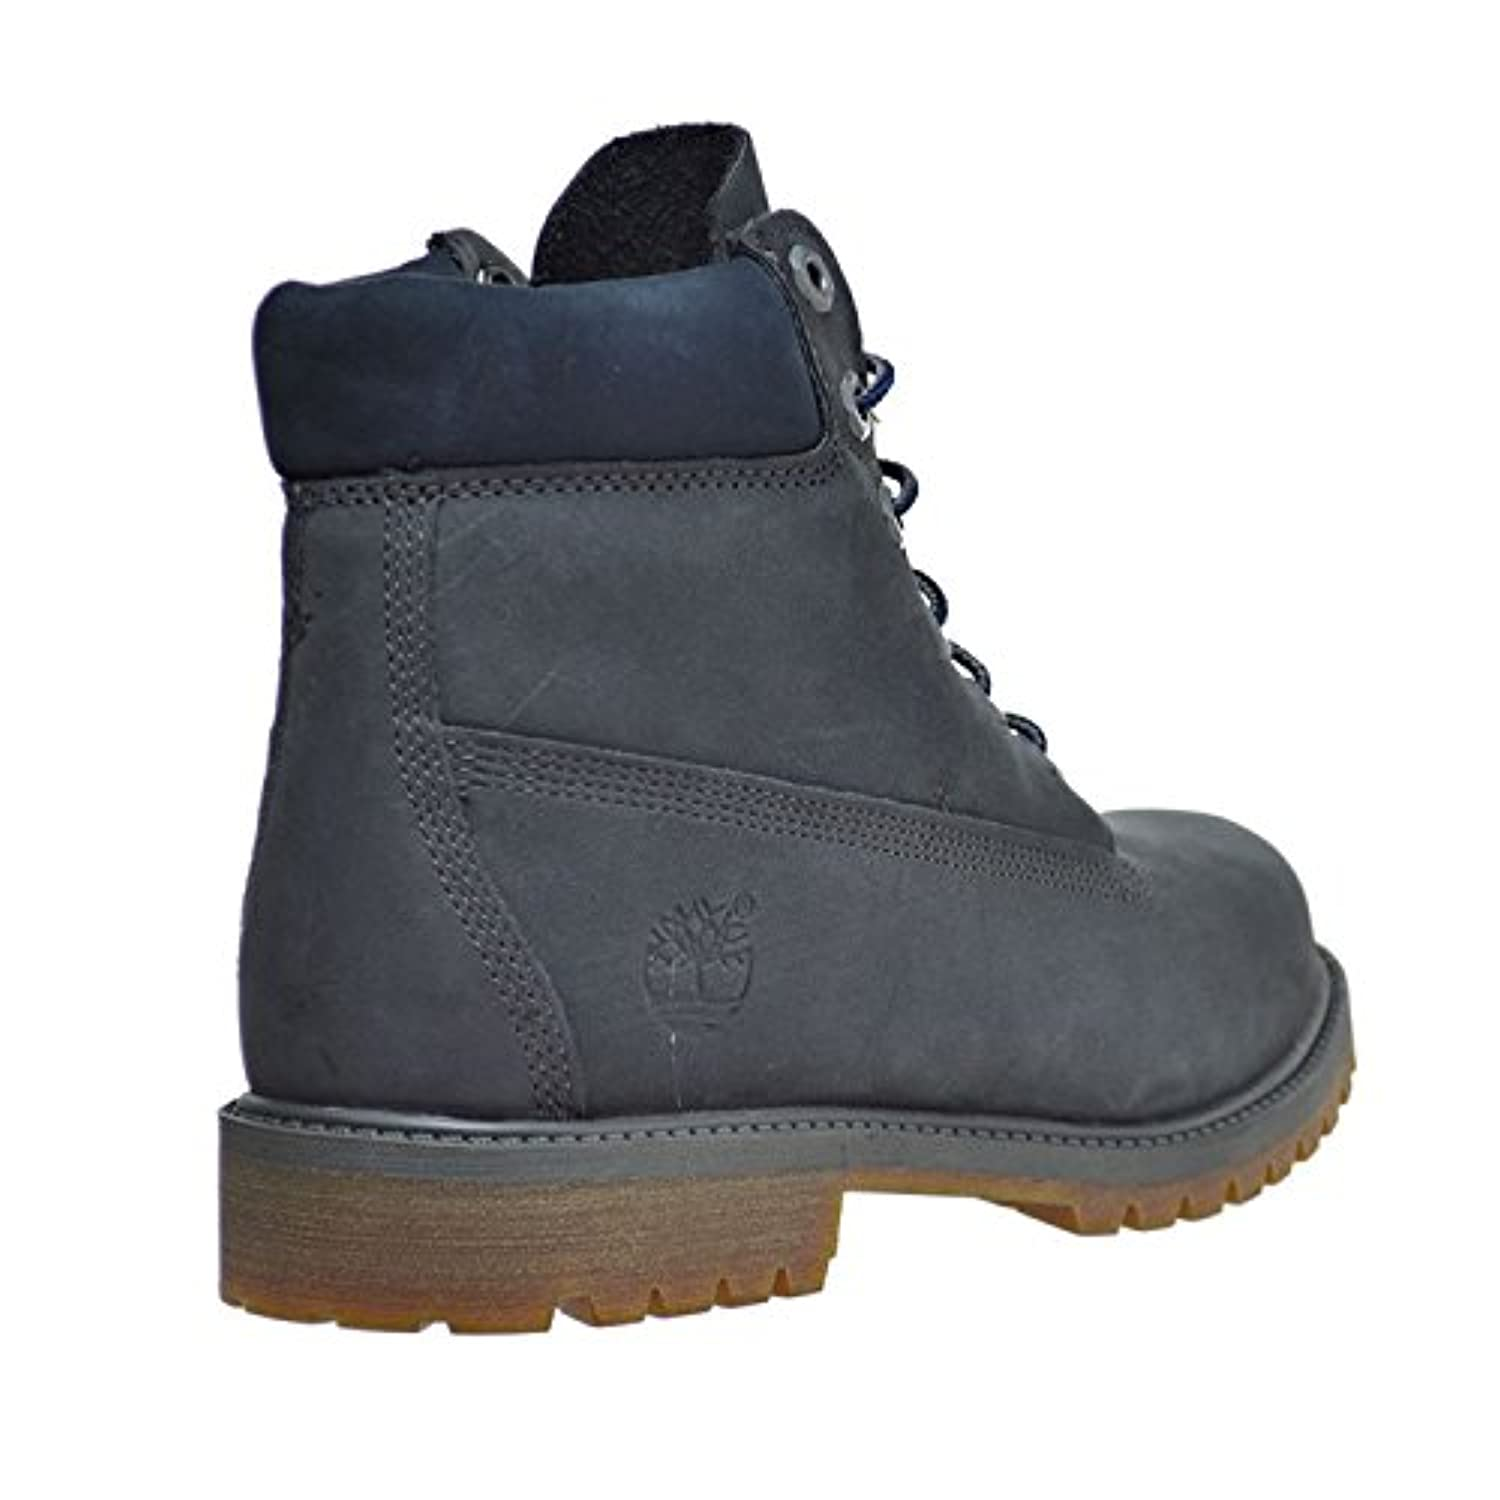 Timberland 6 Inch Classic Boot Youth Dark Grey Nubuck 3 UK